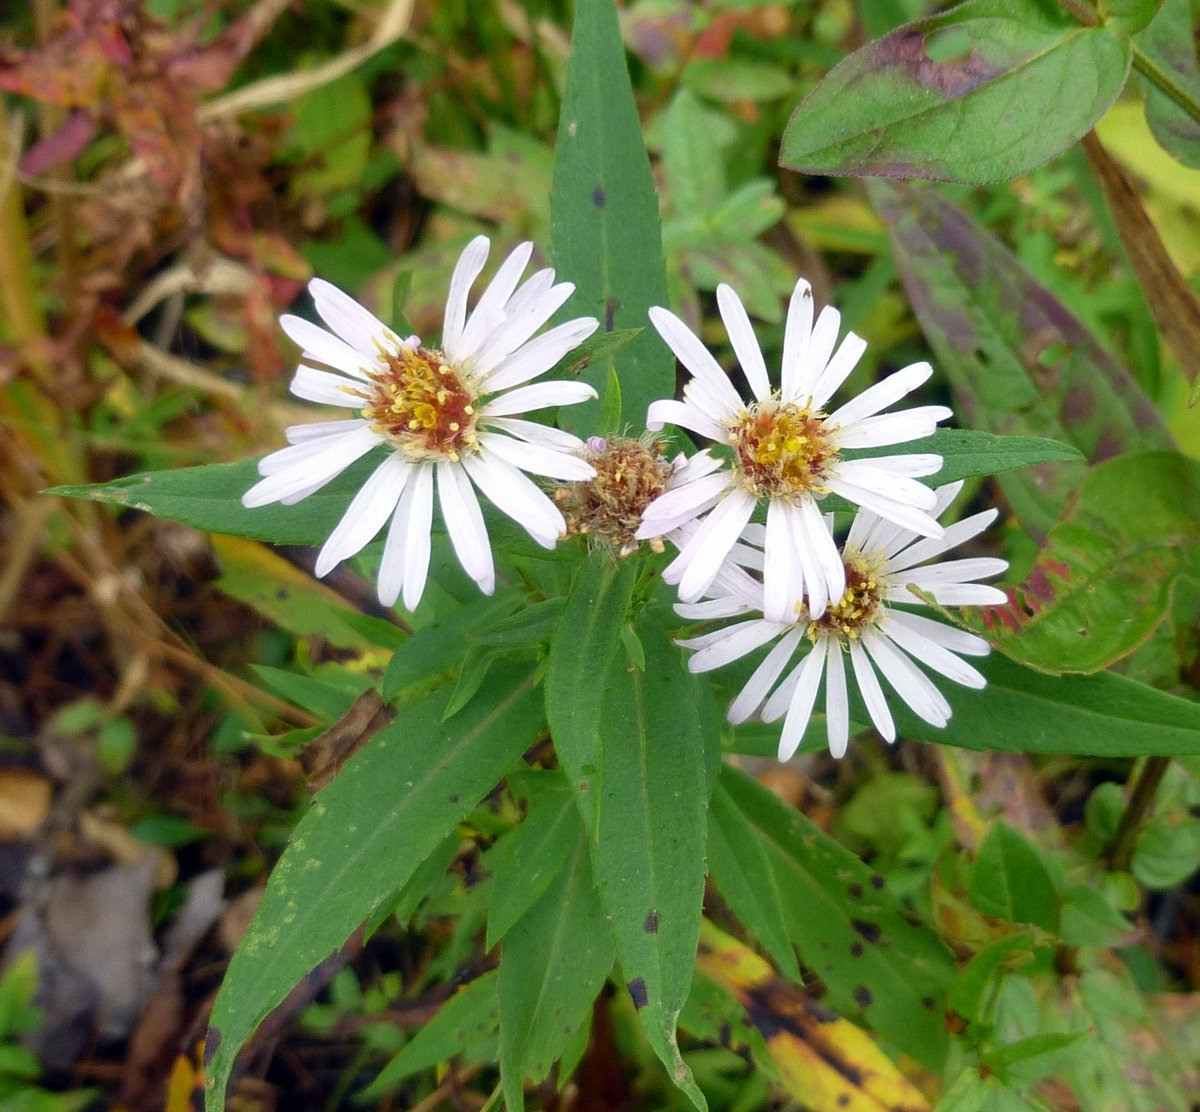 3. Panicled Aster